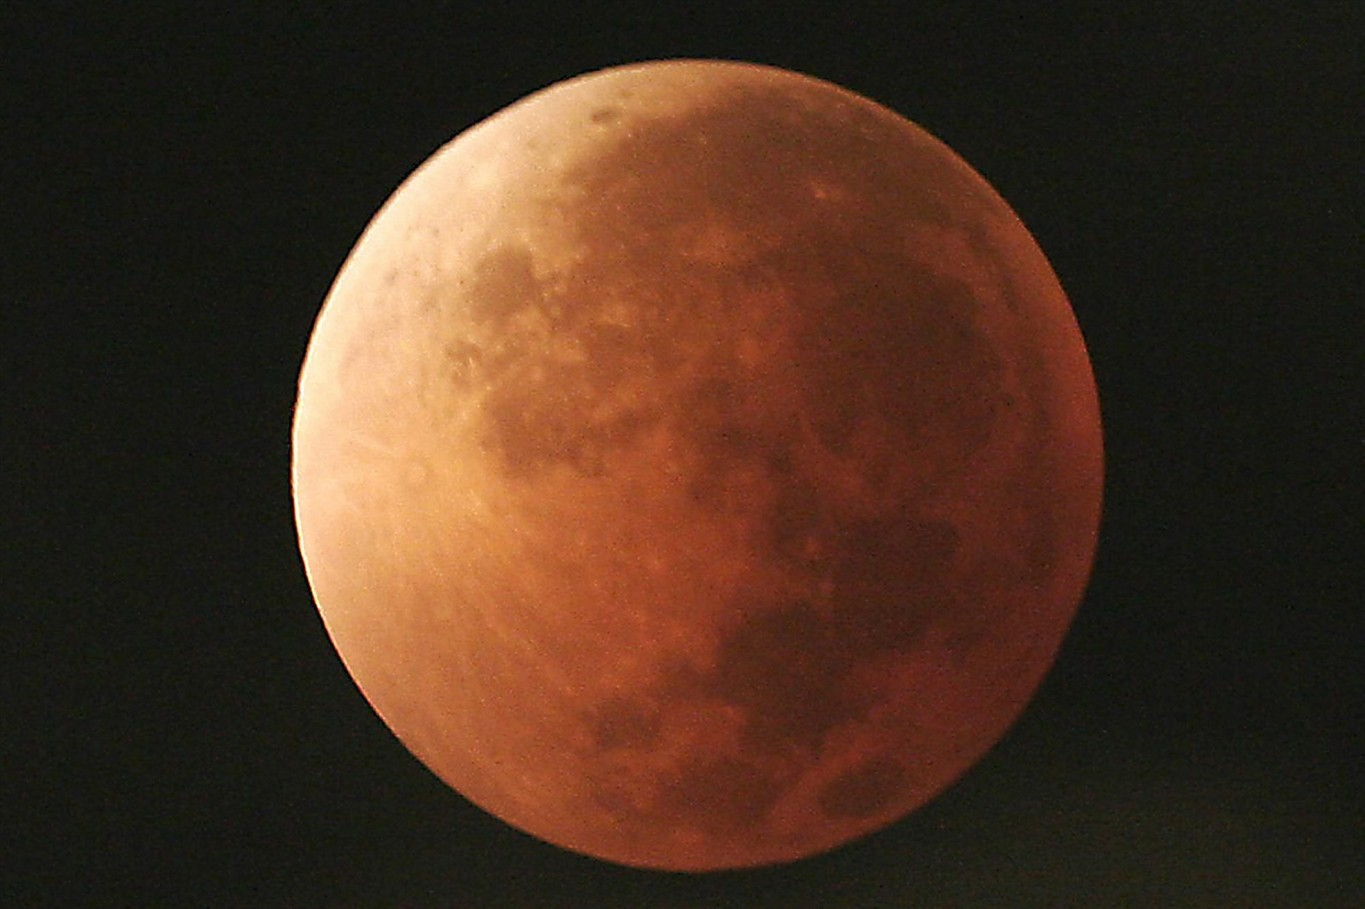 Celestial trifecta: Super Blue Blood Moon coming Wednesday